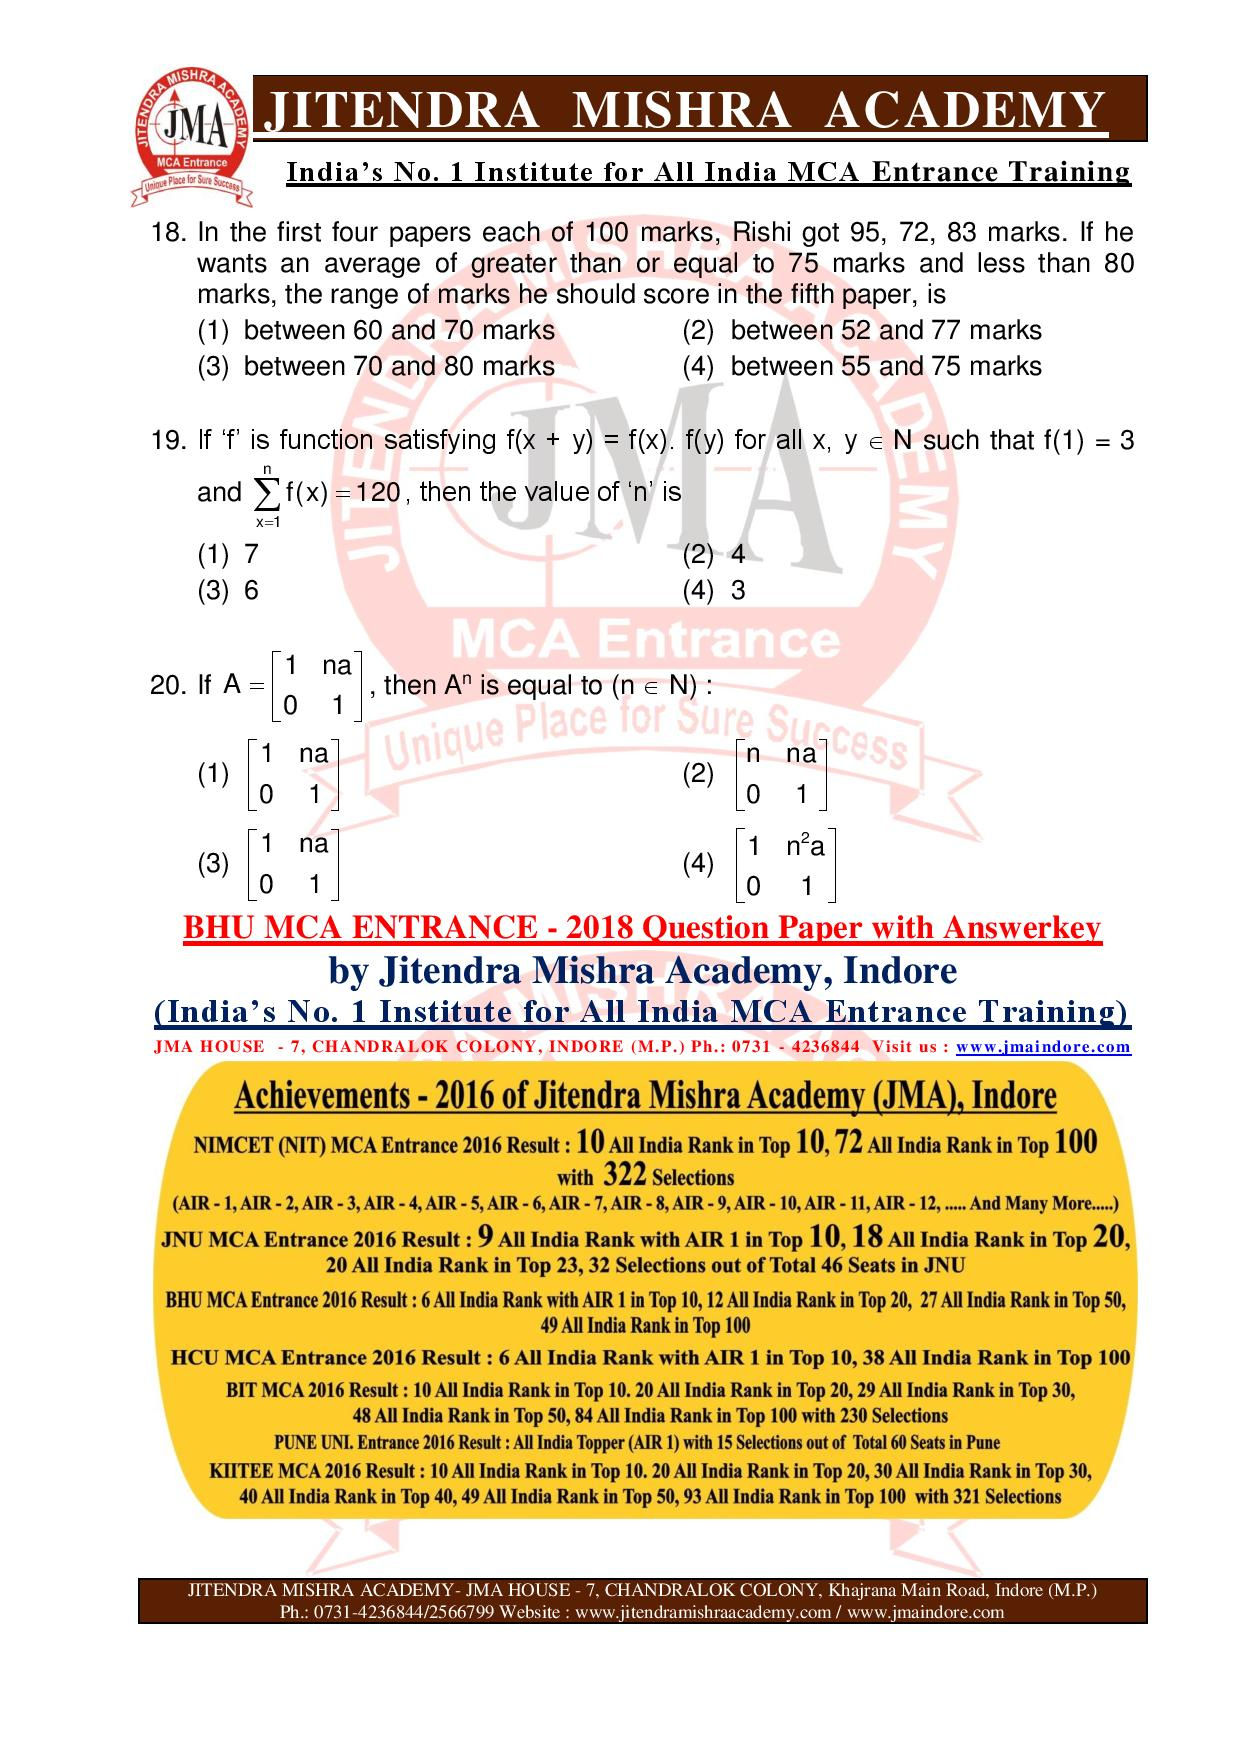 BHU MCA 2018 QUESTION PAPER12-page-006